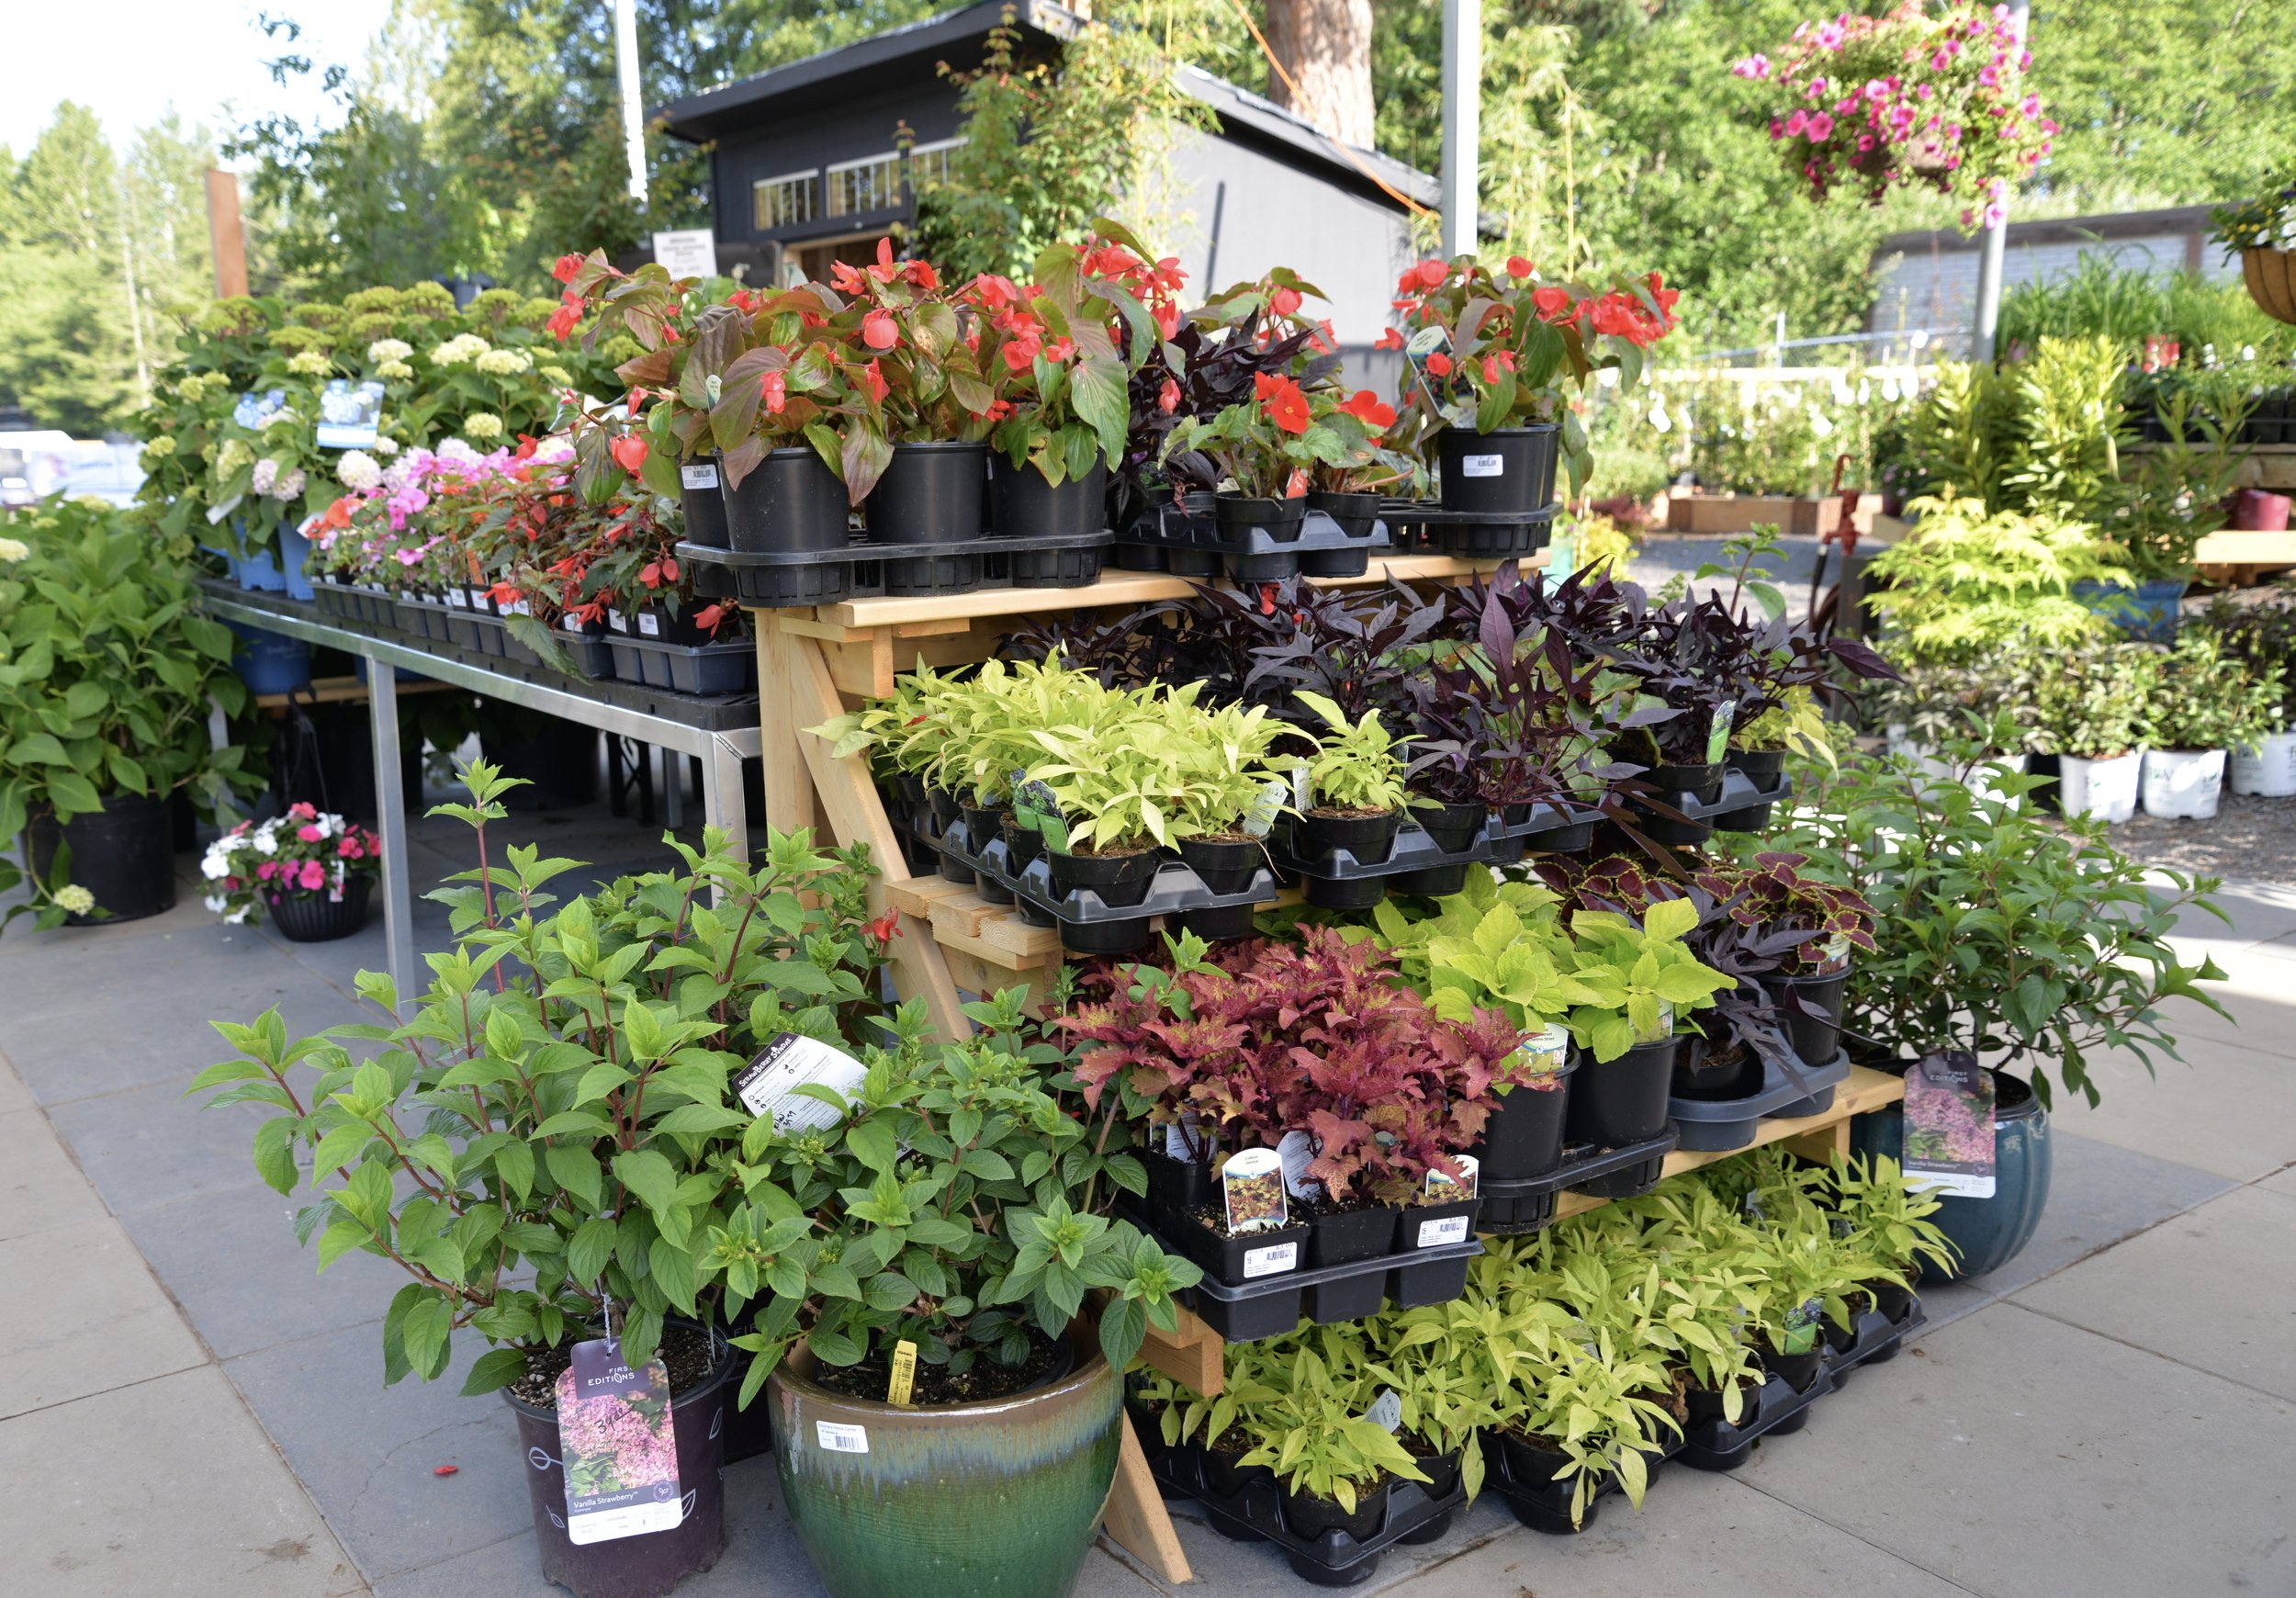 Multi-level displays and end-caps display more plants and containers within view of shoppers.